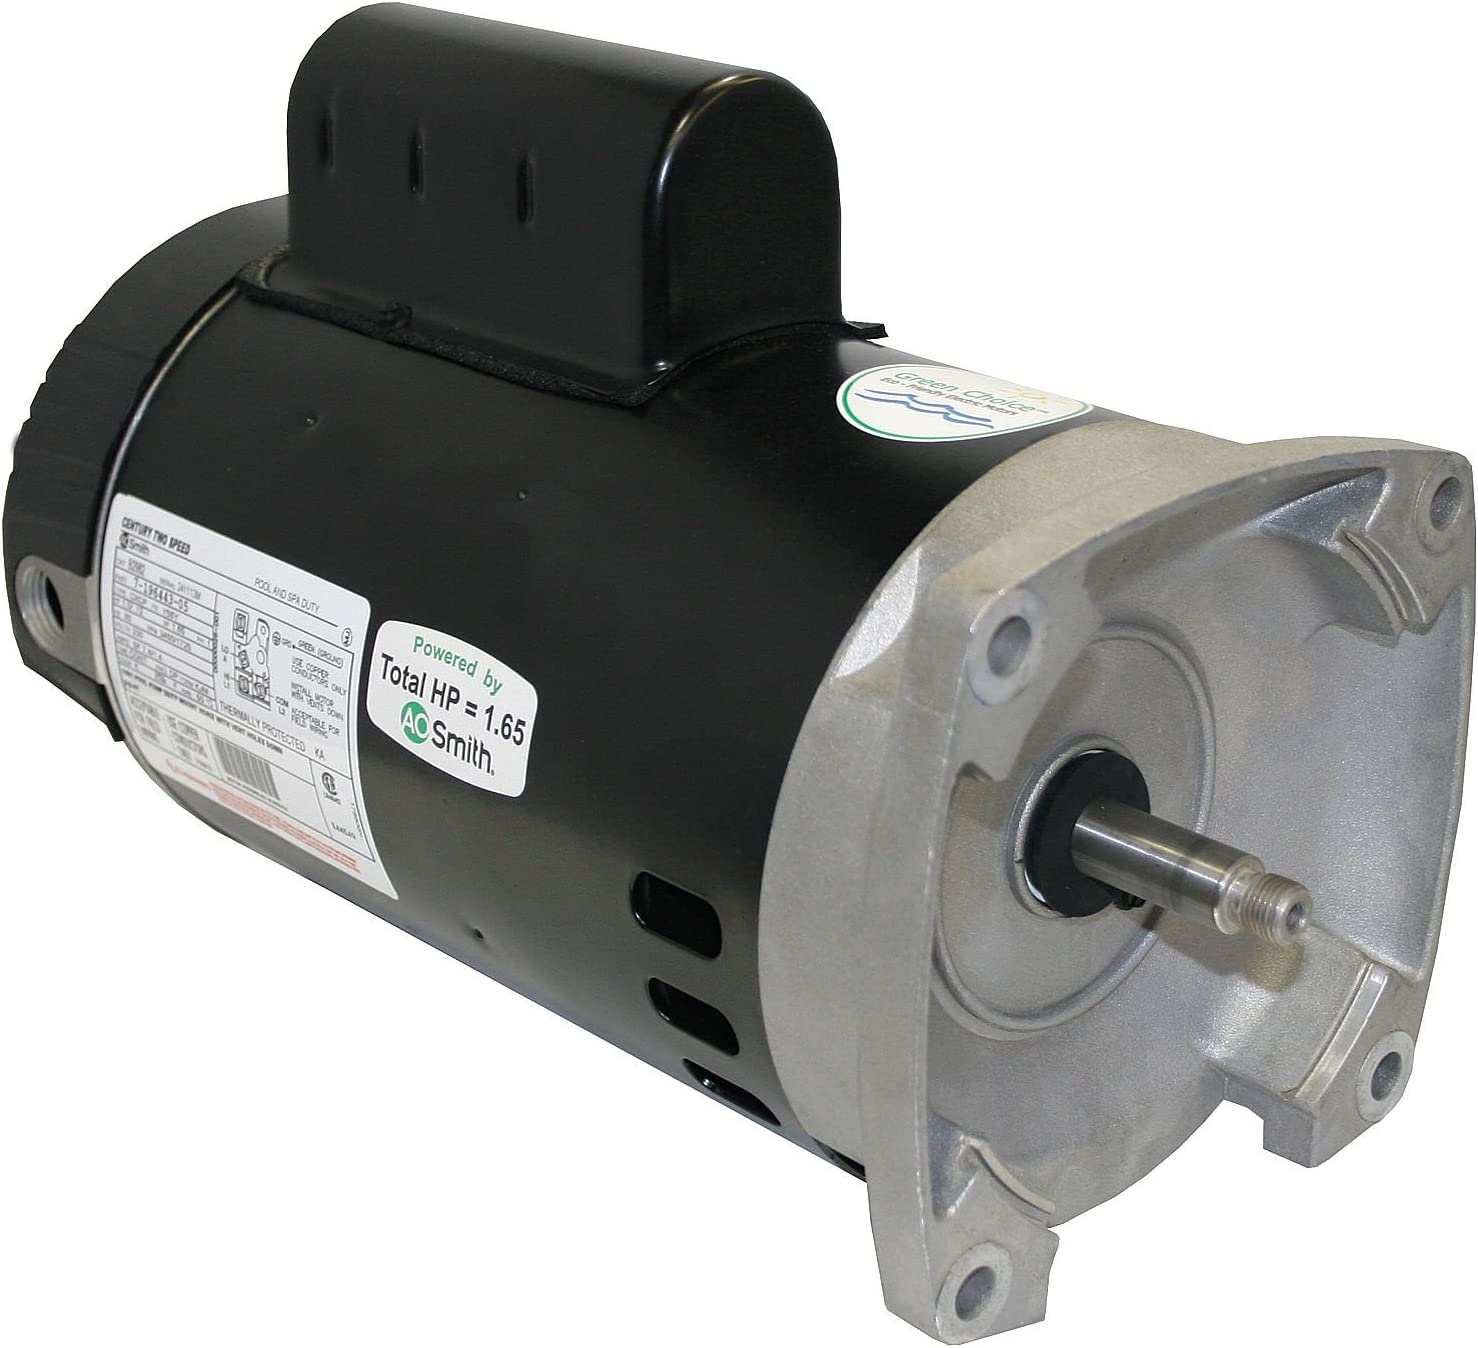 A.O.Smith B2982 1HP 230V 56Y 100% wholesale quality warranty Frame 2-Speed Square Pool or Flange